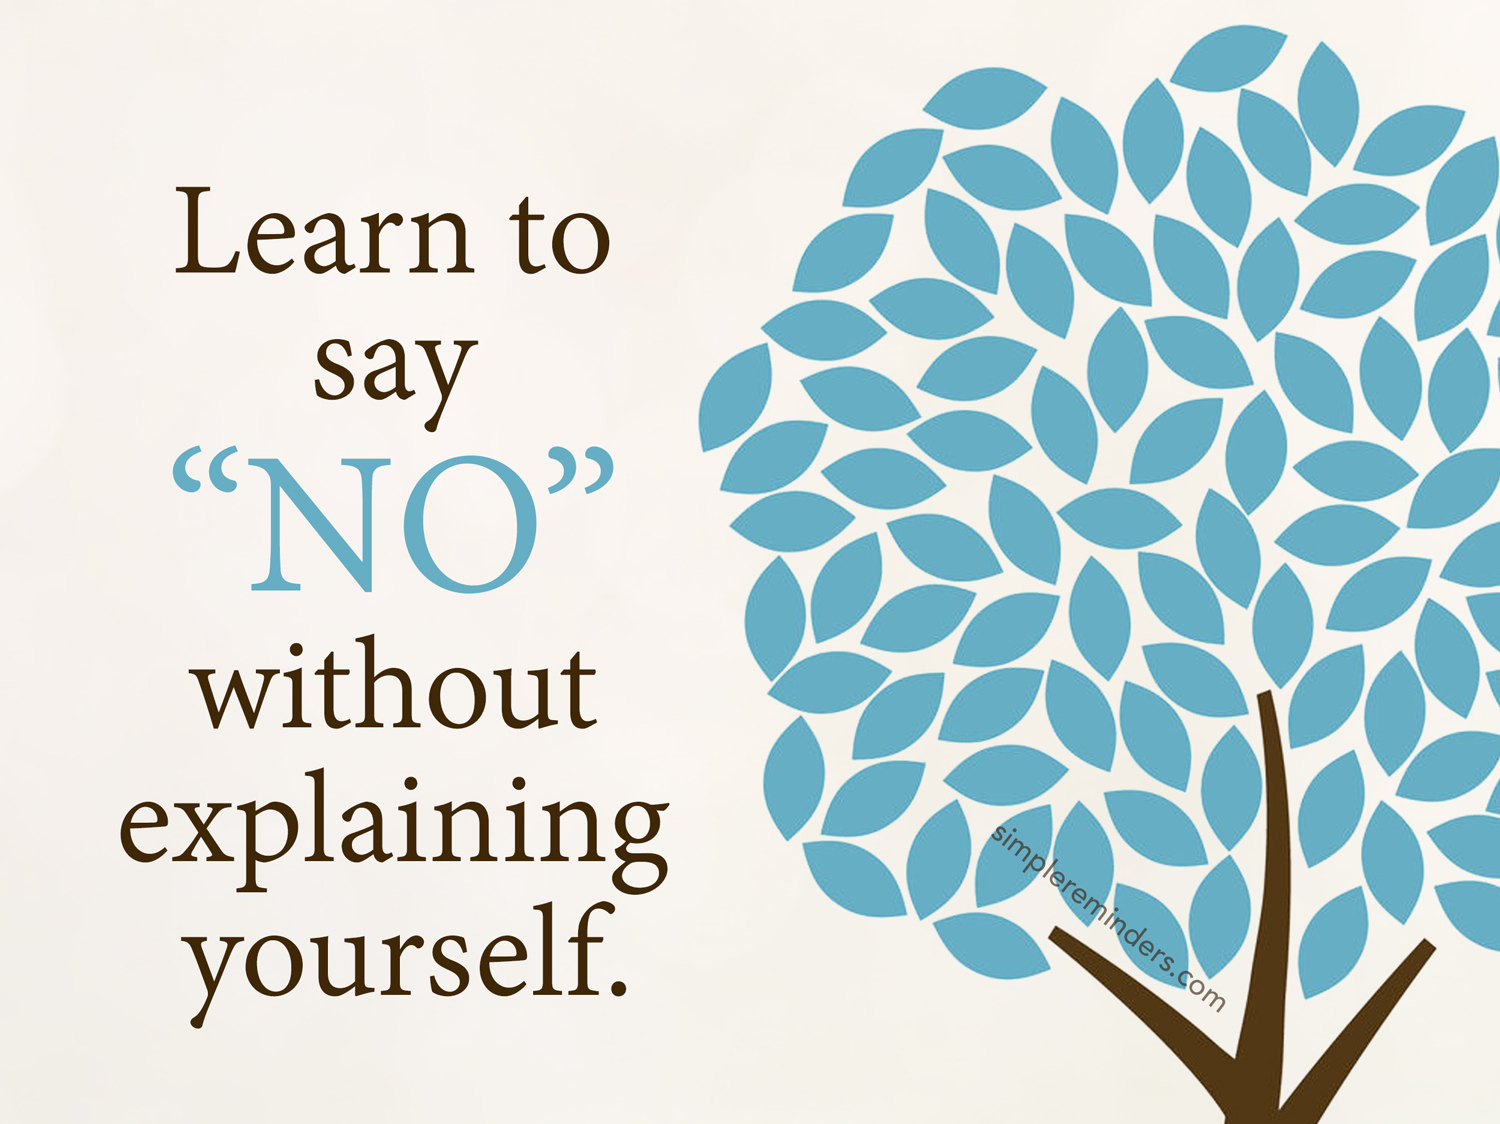 unknown-author-color-text-cream-paper-learn-say-no-explaining-8u3x